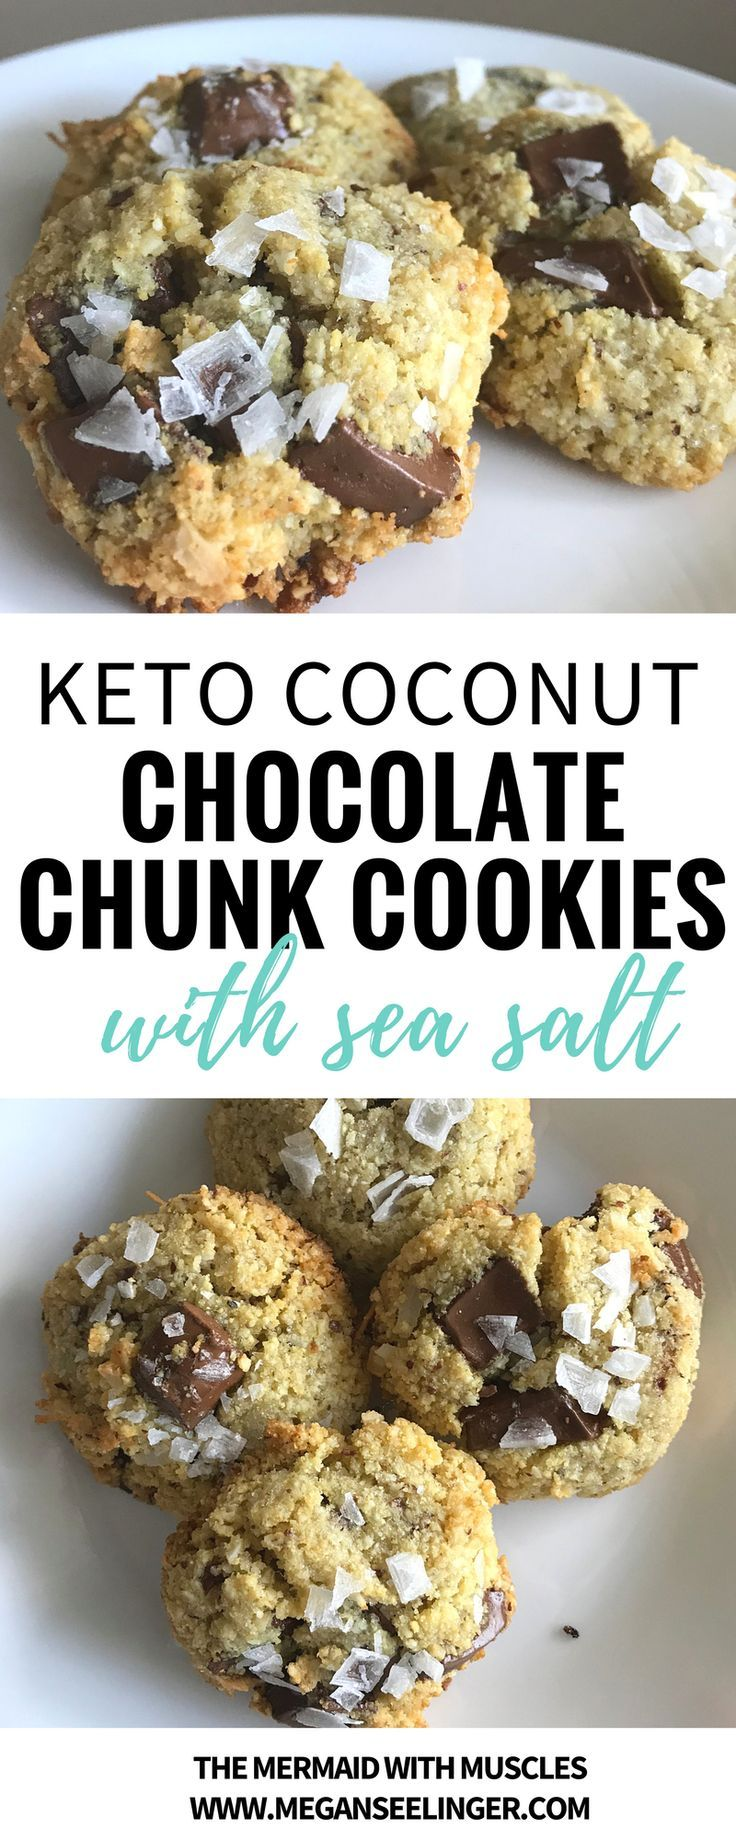 There is only one thing better than chocolate chip cookies and that's Coconut Chocolate Chunk Cookies with Sea salt, which are the perfect sweet and salty keto cookie recipe.This easy recipe uses both coconut flour and almond flour, but is the first cookie recipes with no butter I've ever. #cookierecipe #ketodiet #easyrecipe #ketodessert